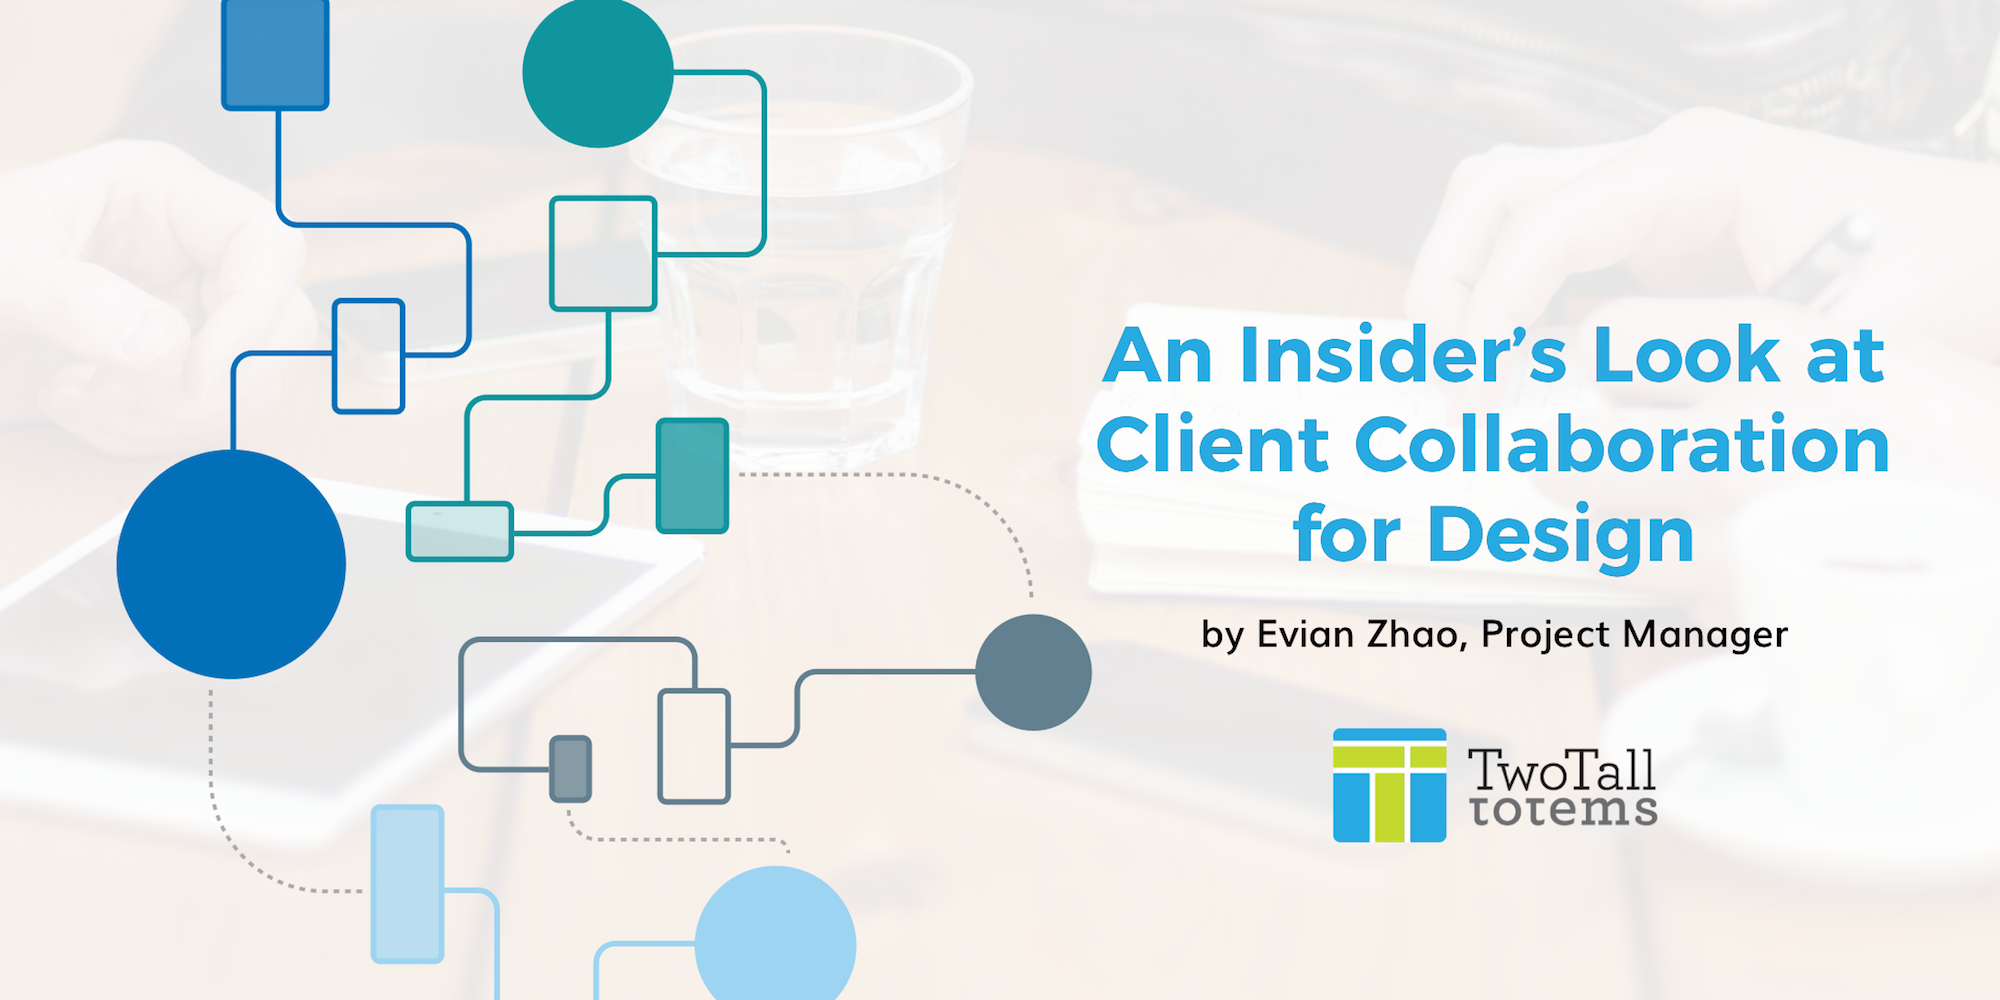 An insider's look on client collaboration for design